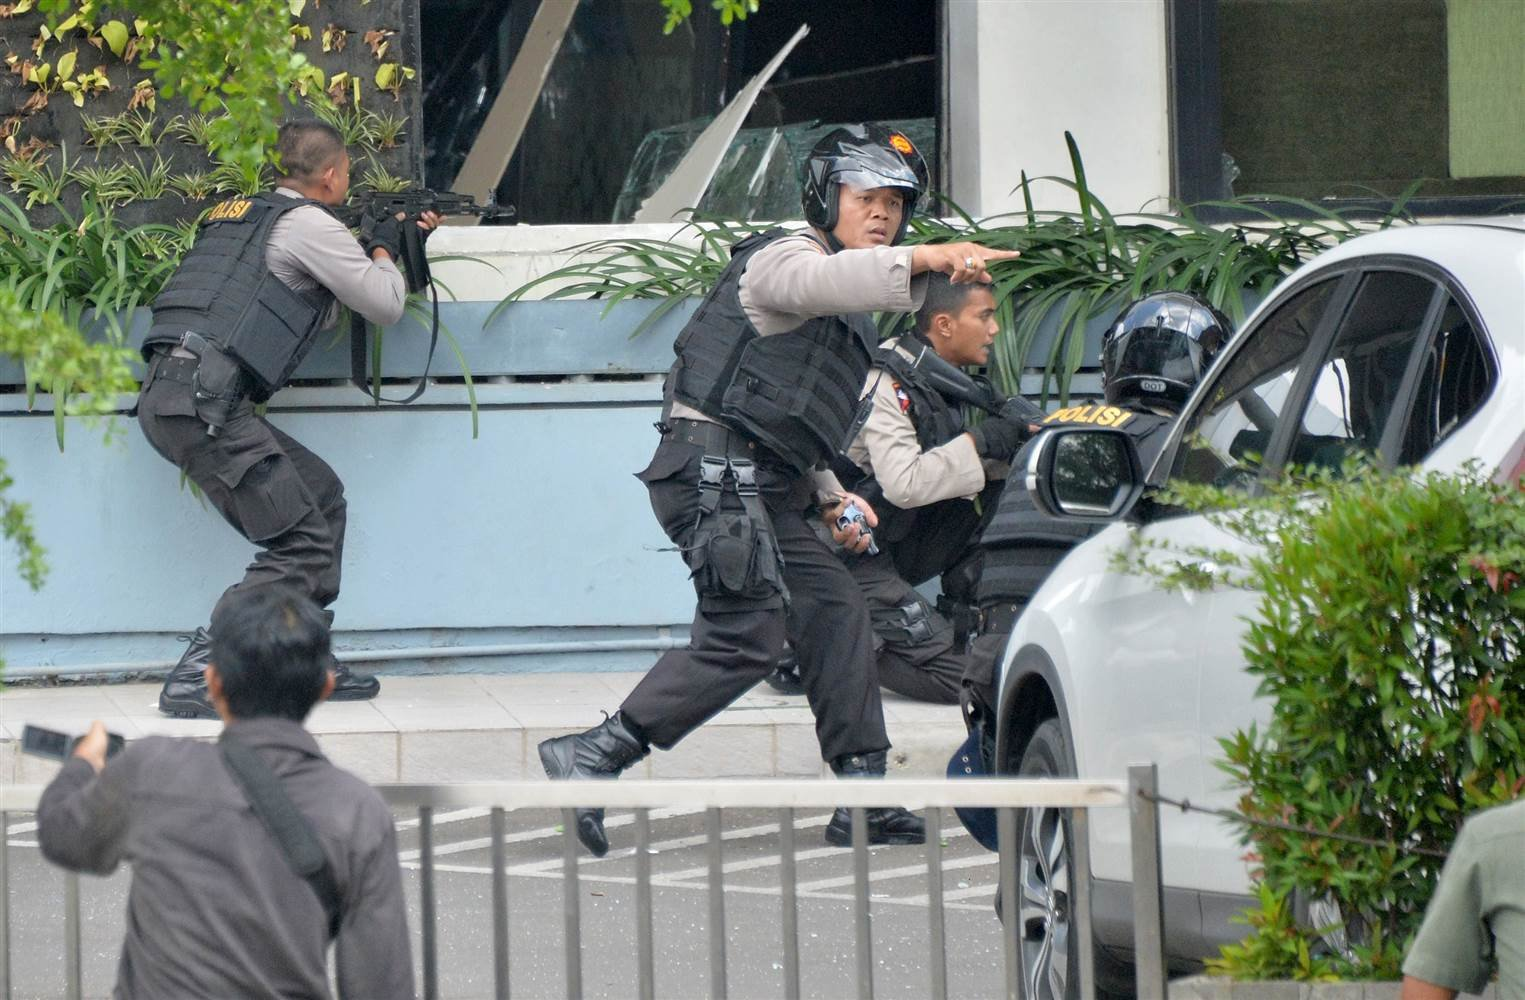 Indonesian police take position and aim their weapons as they pursue suspects outside a cafe after a series of blasts hit the capital, Jakarta, on Thursday. (Bay Ismoyo / AFP - Getty Images)